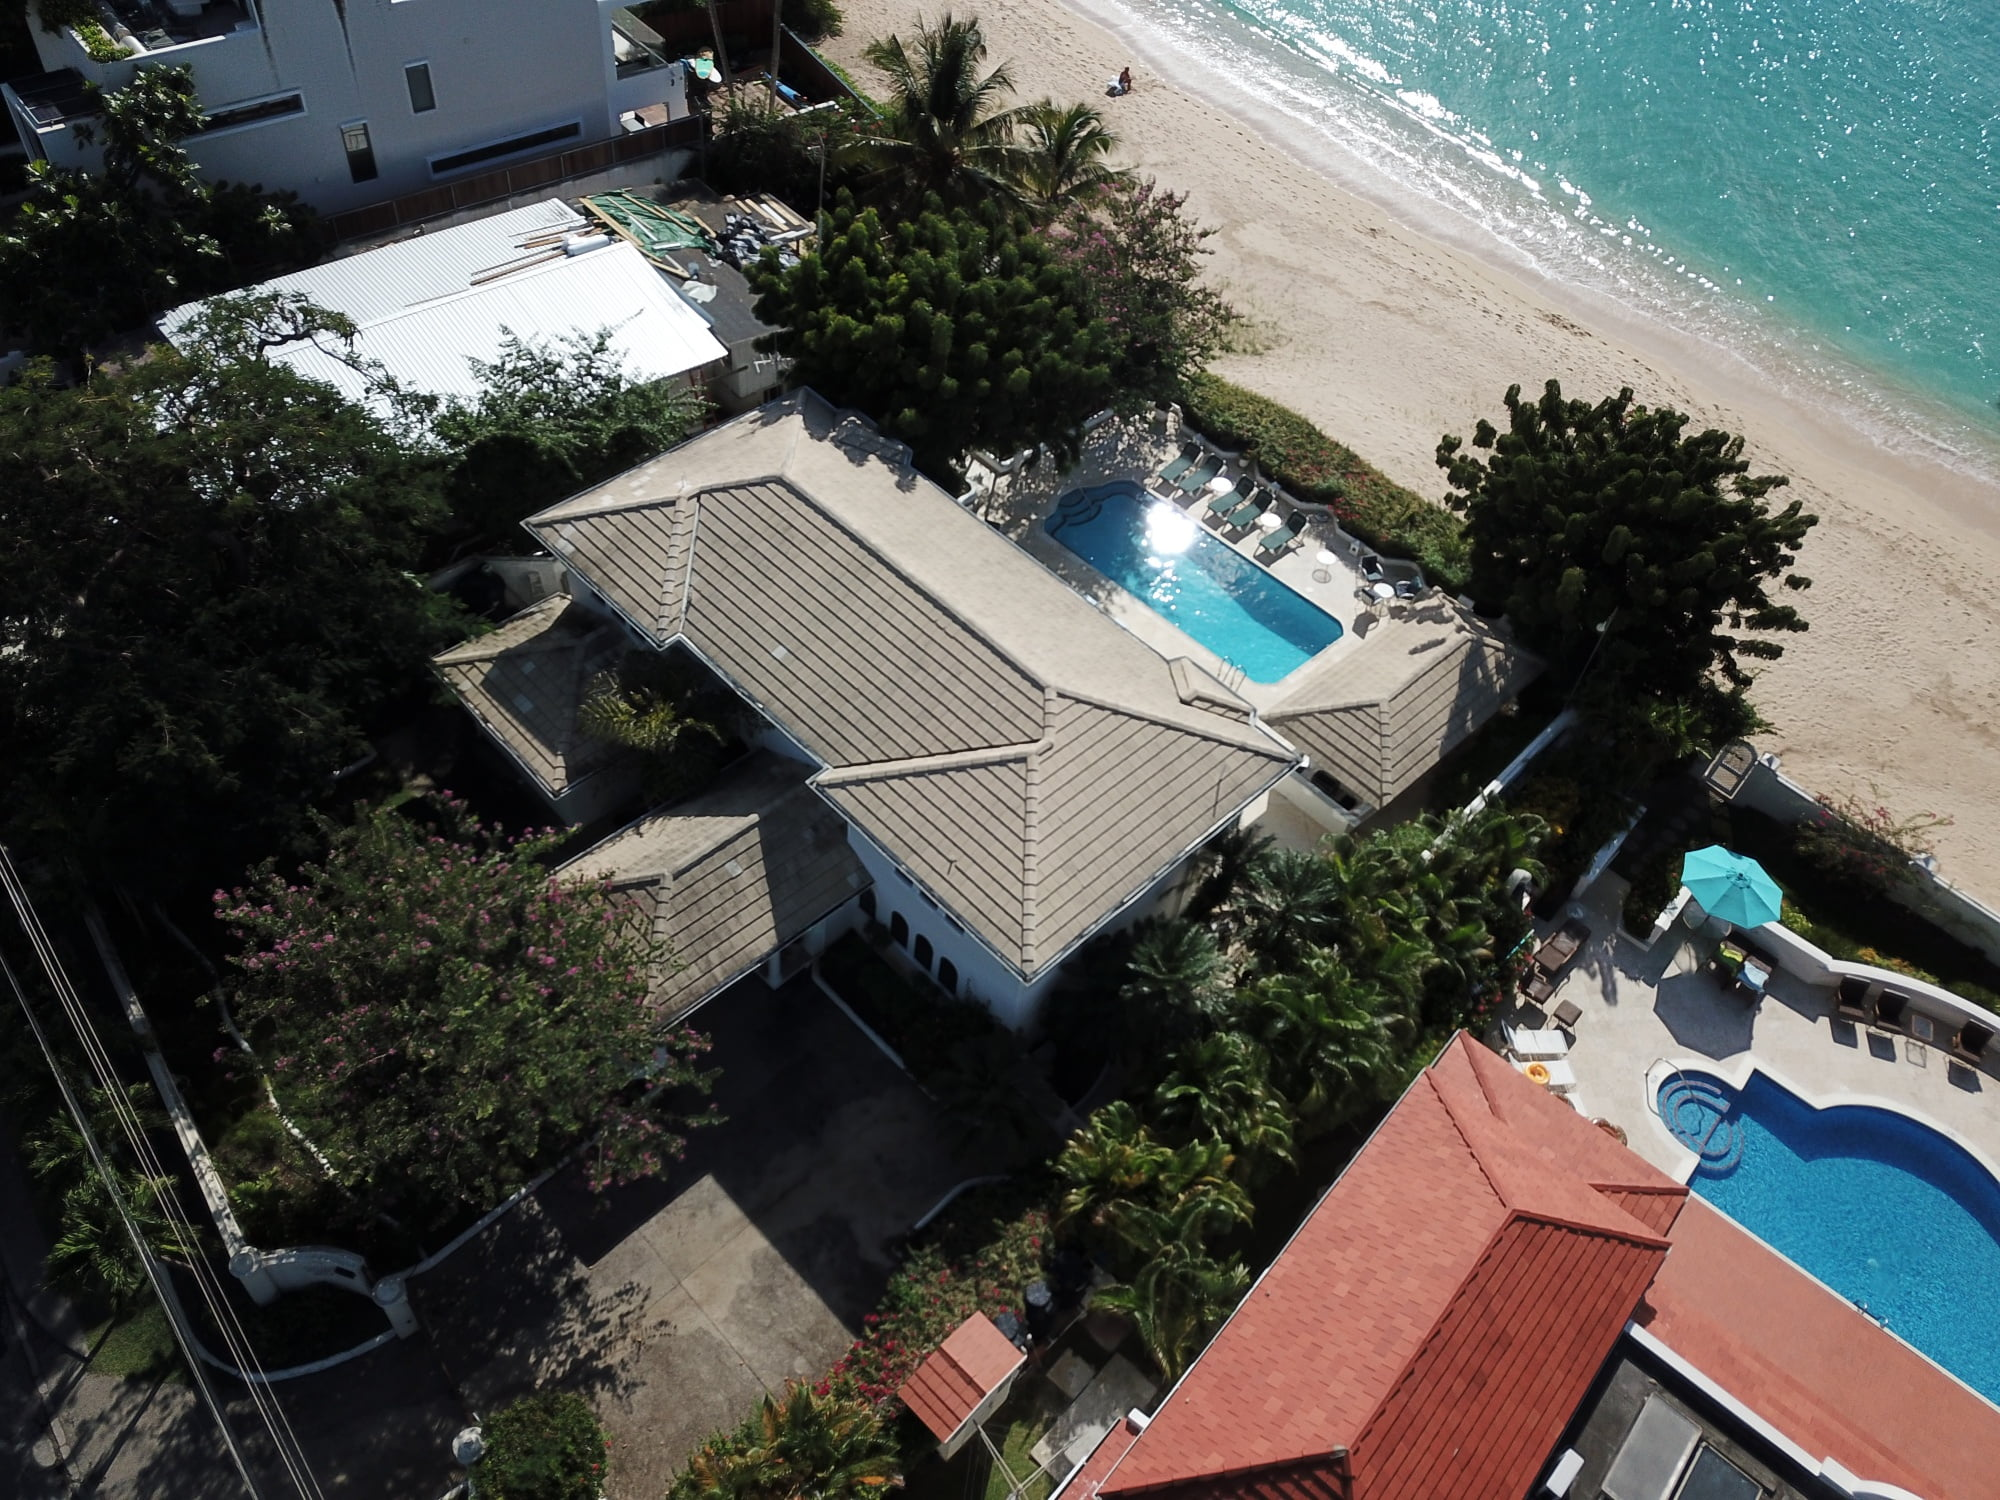 Oyster Bay, Lower Carlton, St. James (US$ 11,900.00/ BBD$ 23,800.00 Monthly)